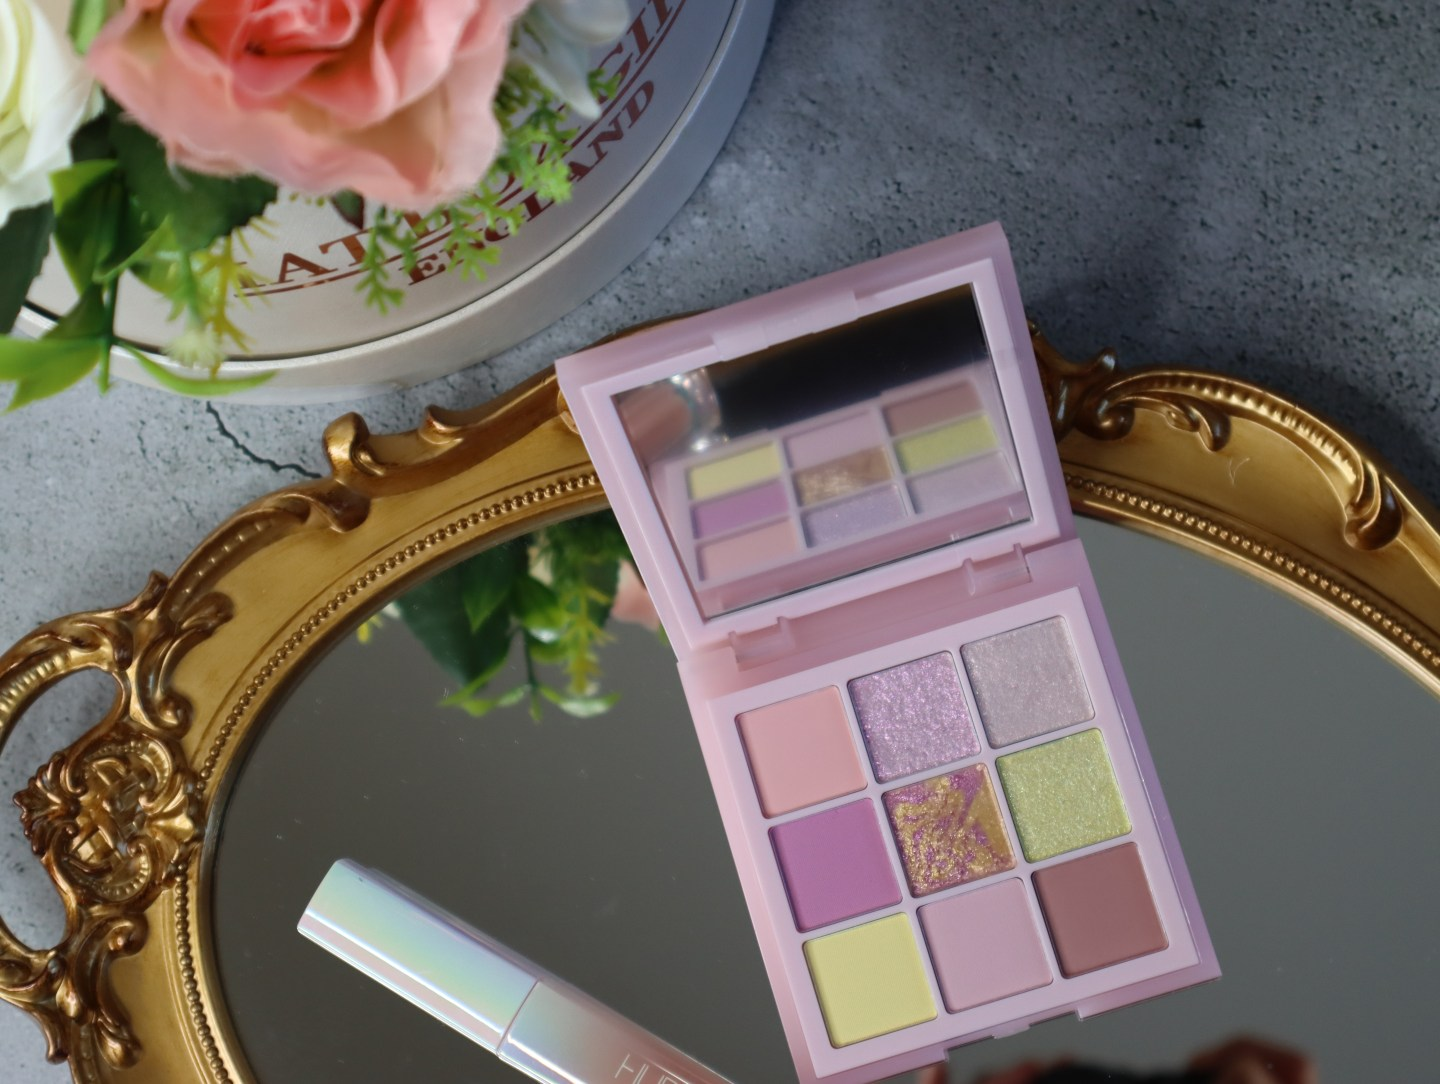 Huda beauty Pastel Rose Obsessions palette review